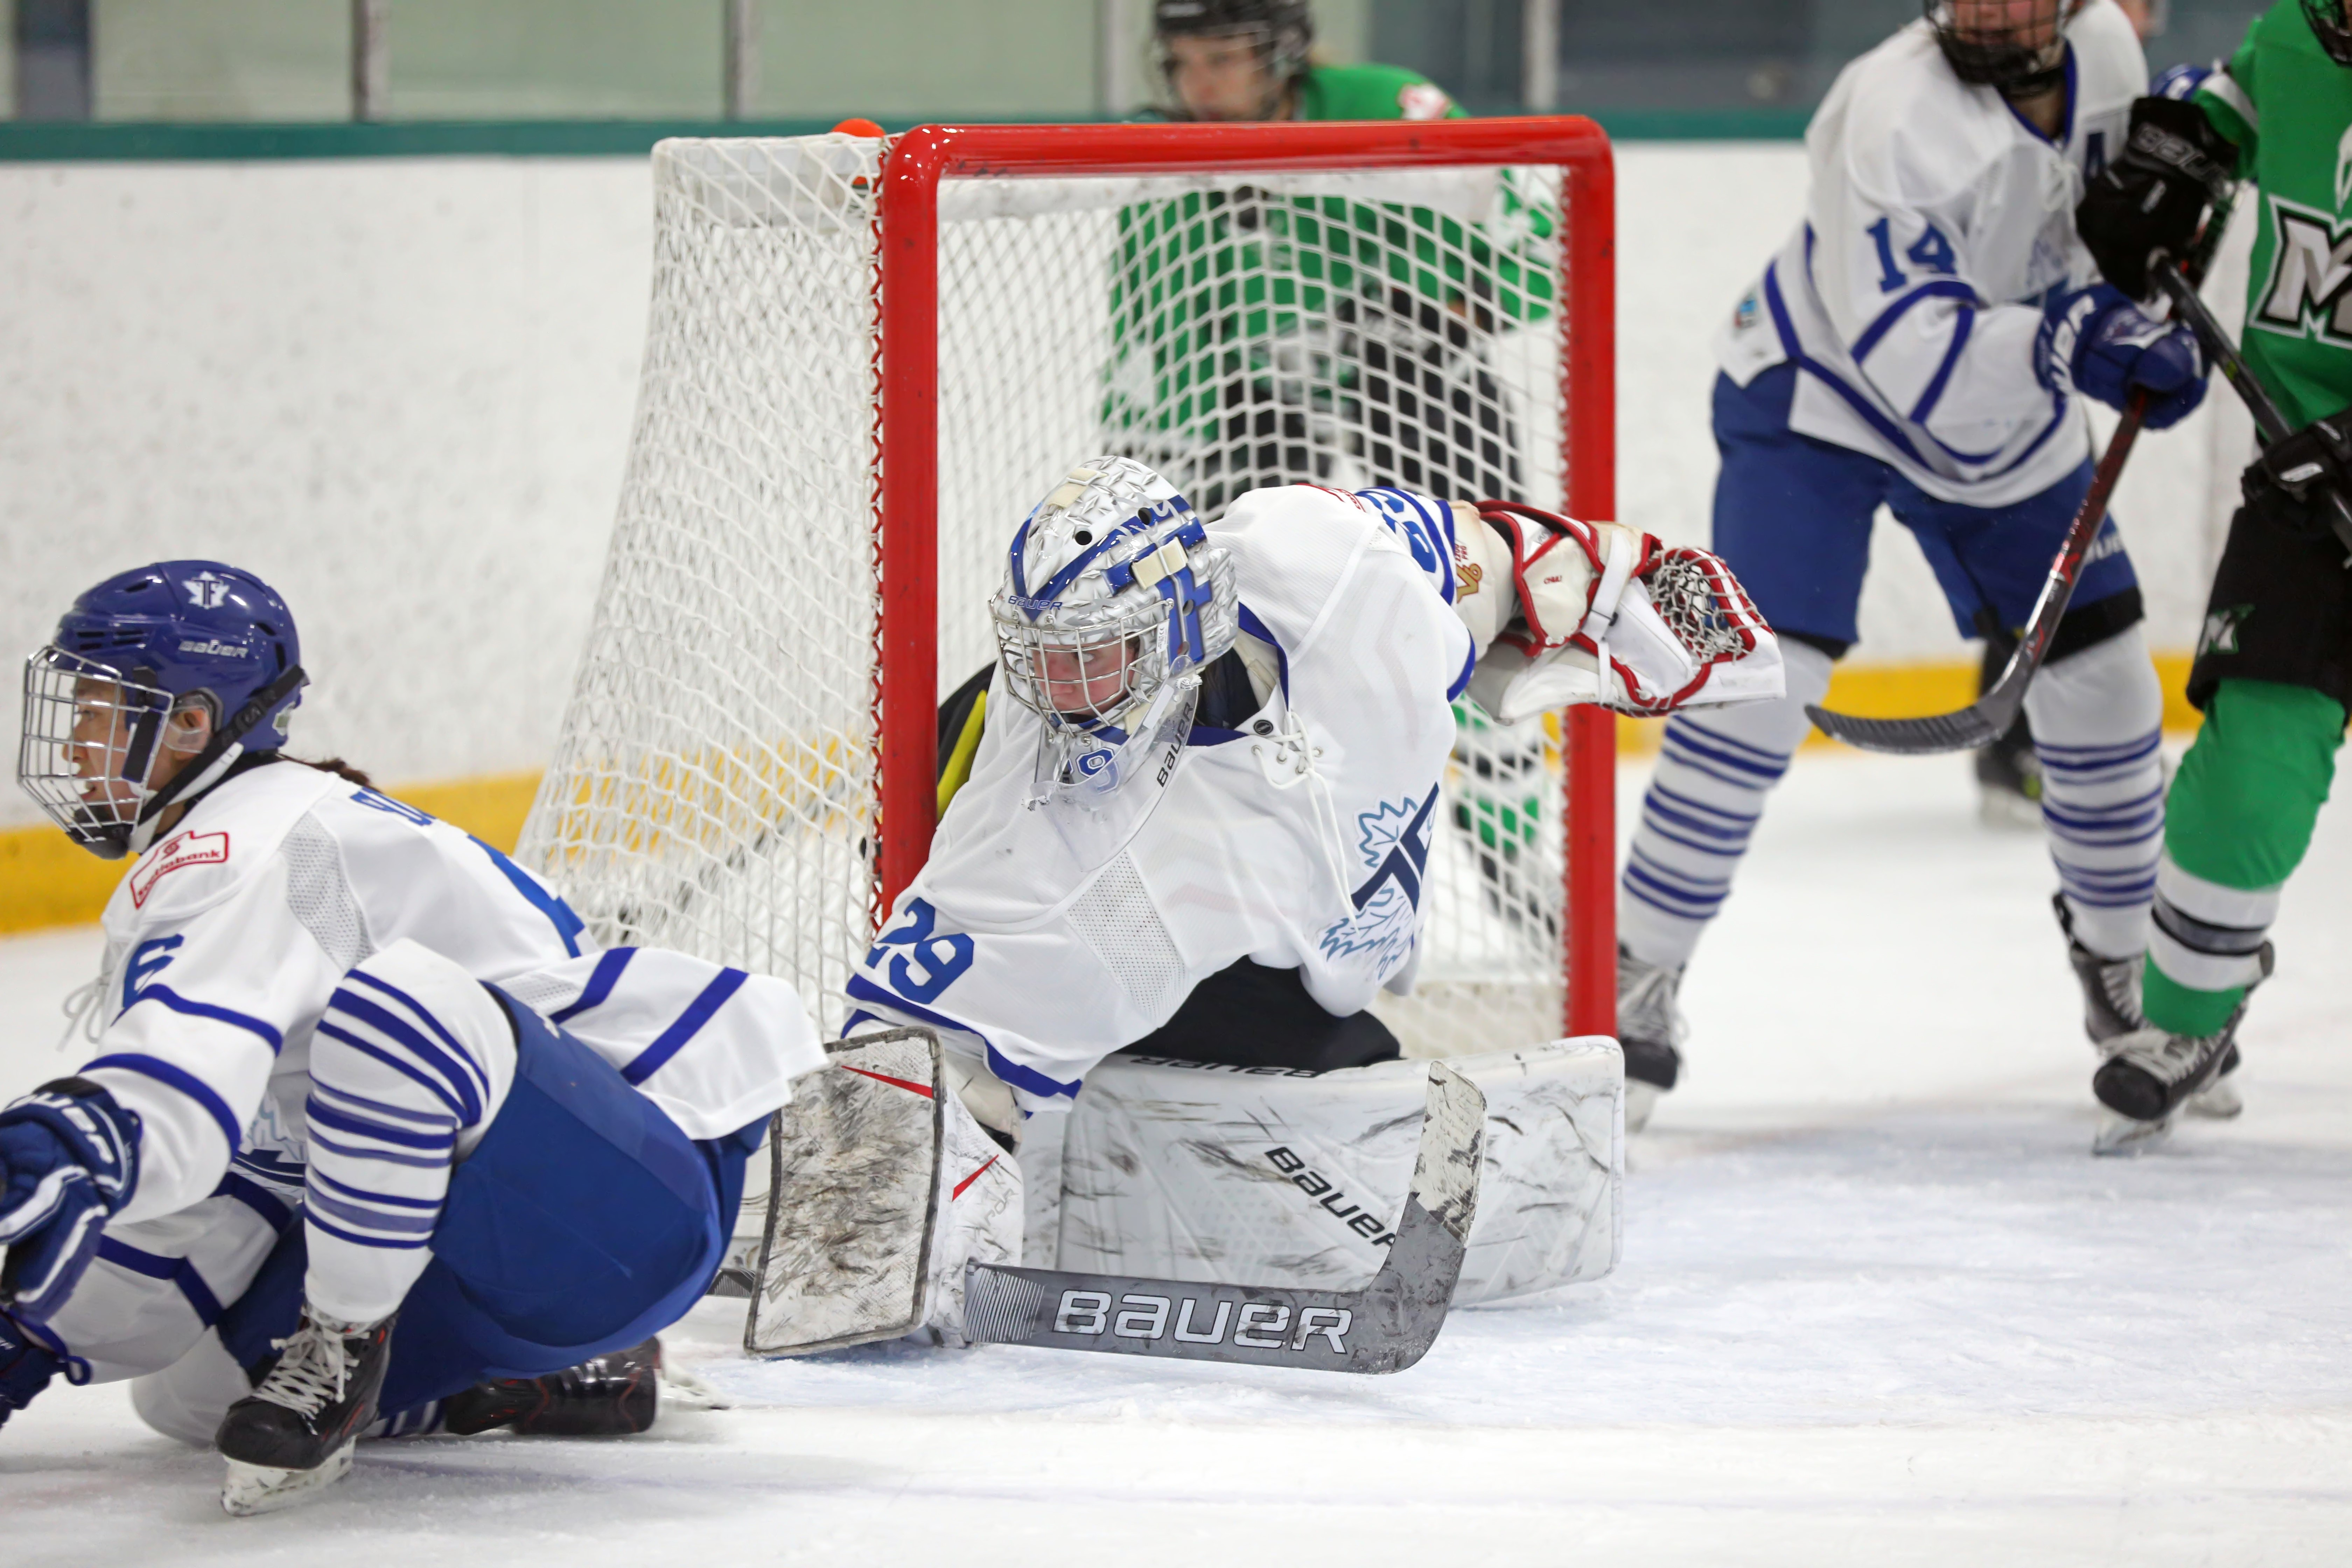 Elaine Chuli (29) of the Toronto Furies stays low in her net with Sena SuzukI (6) defending.